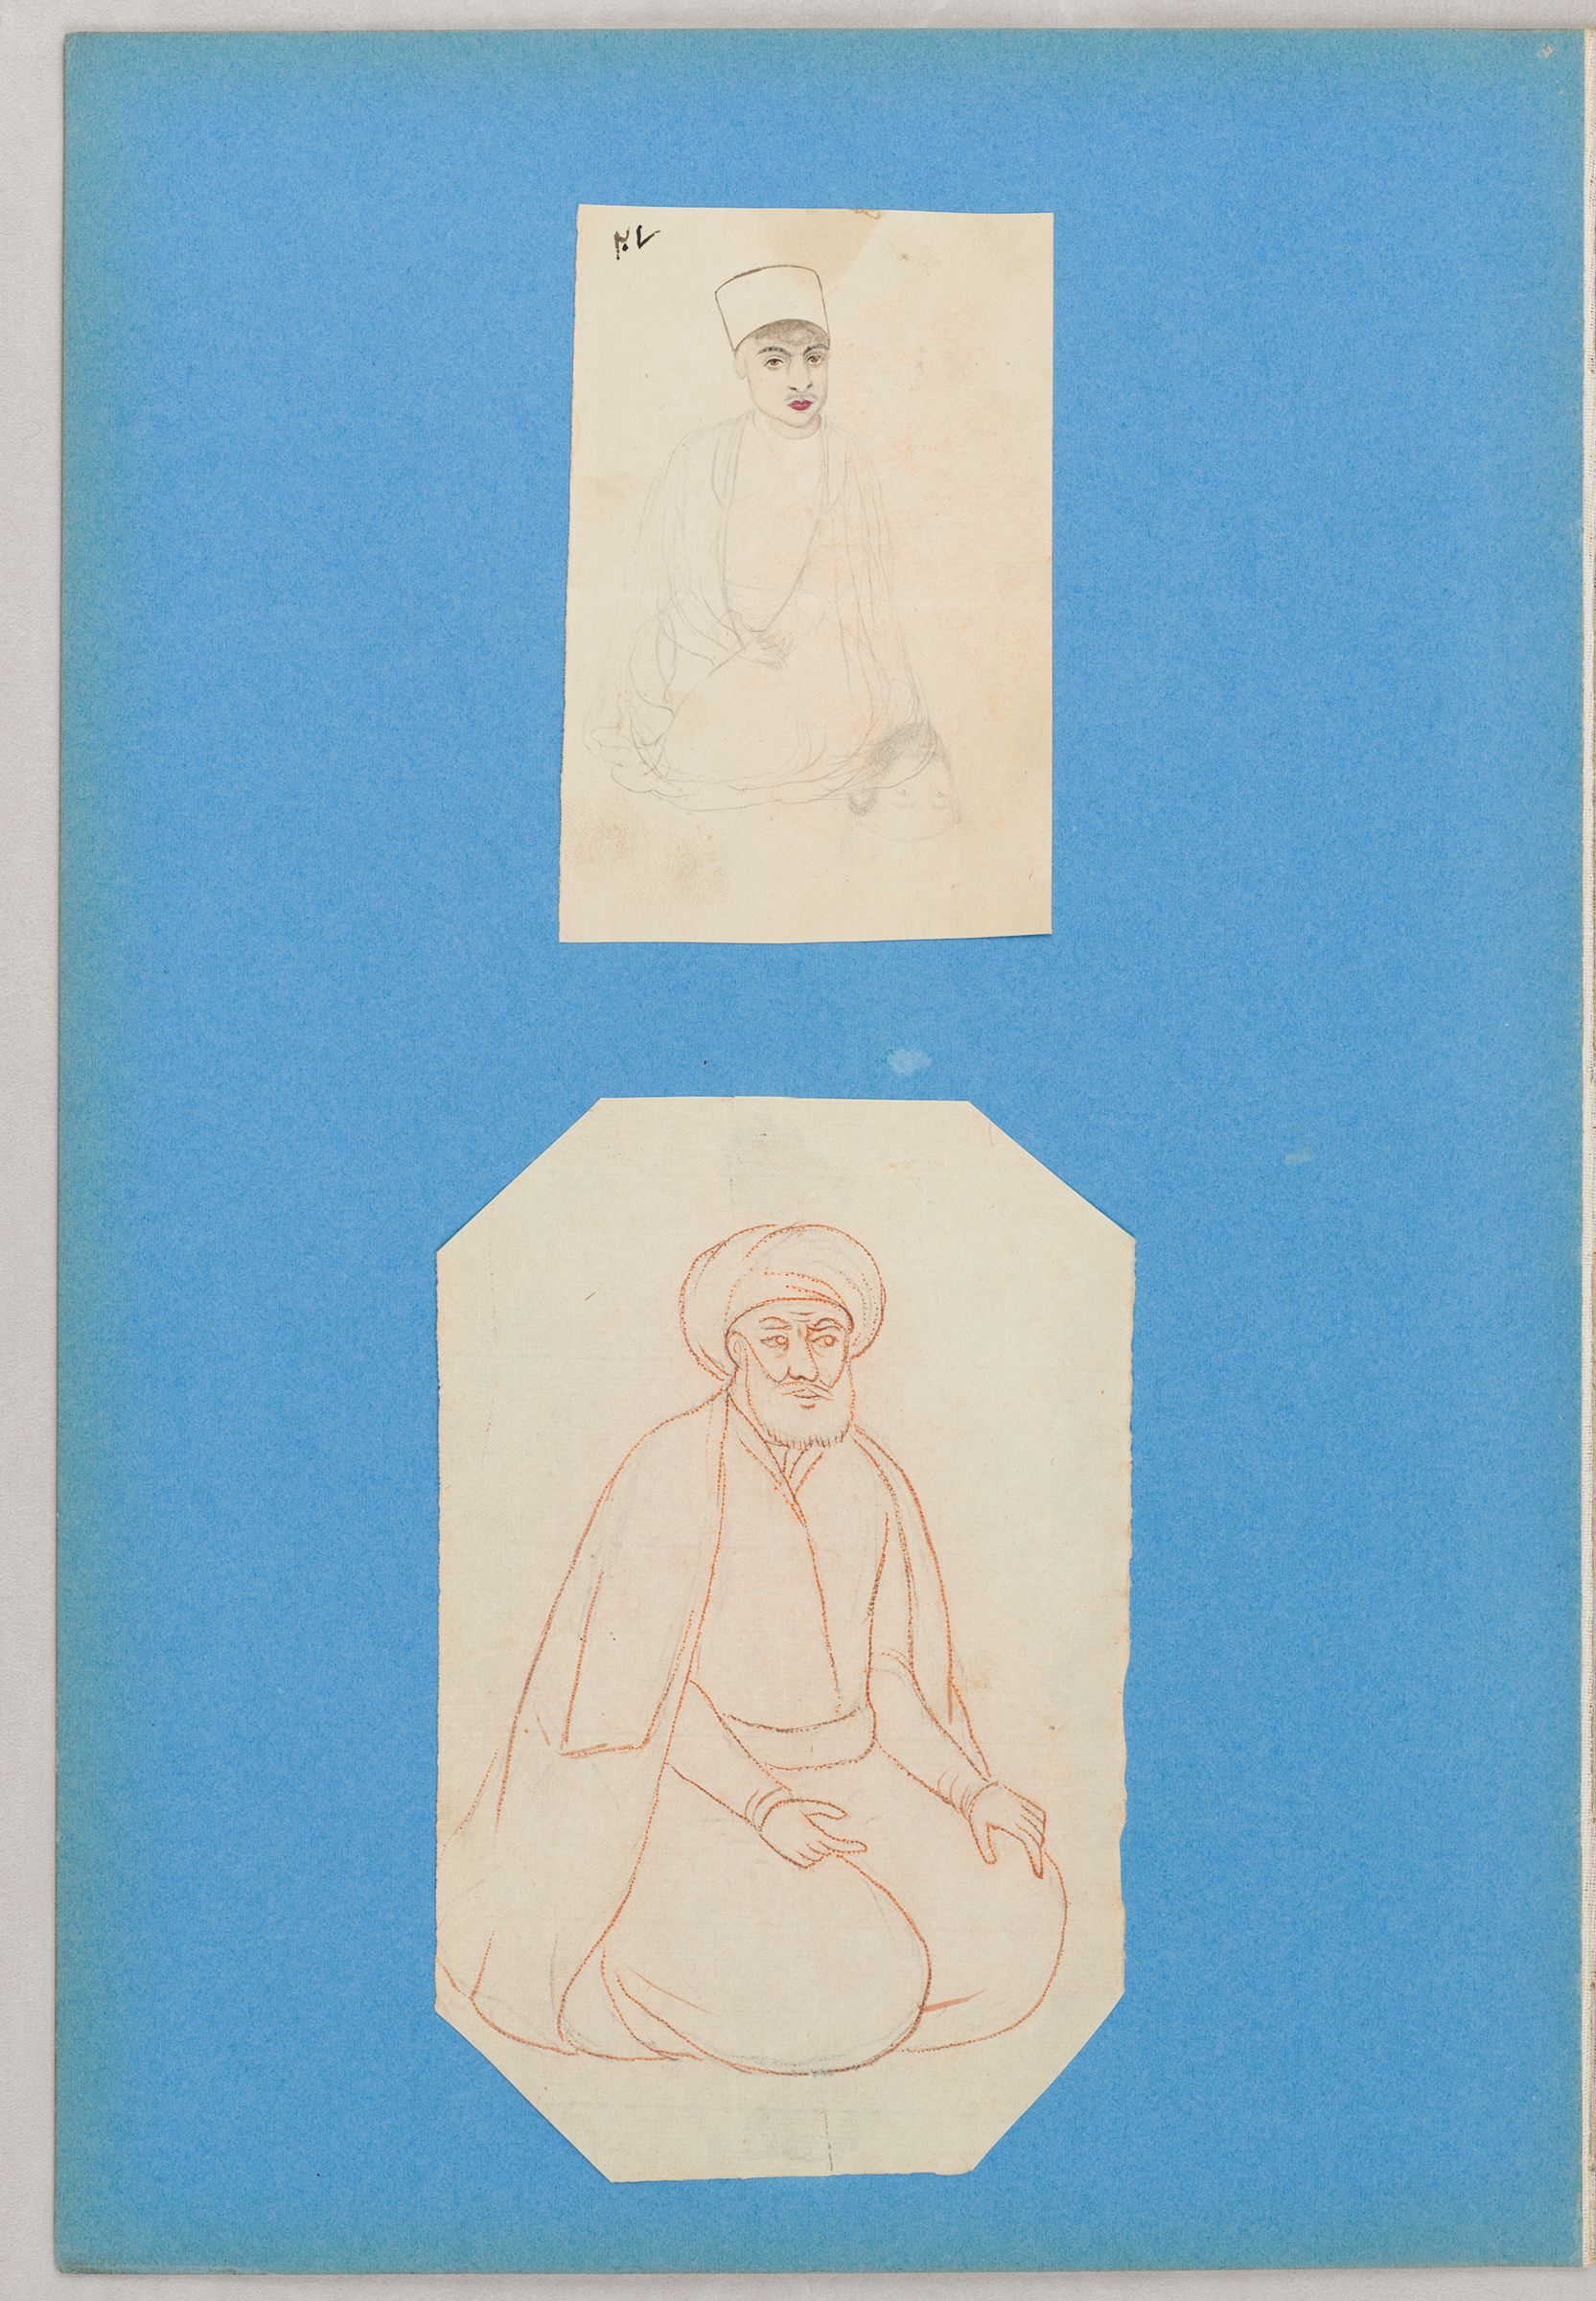 Folio 25 From An Album Of Drawings And Paintings: Two Sheets: Seated Boy; Seated Cleric (Recto); Blank Page (Verso)